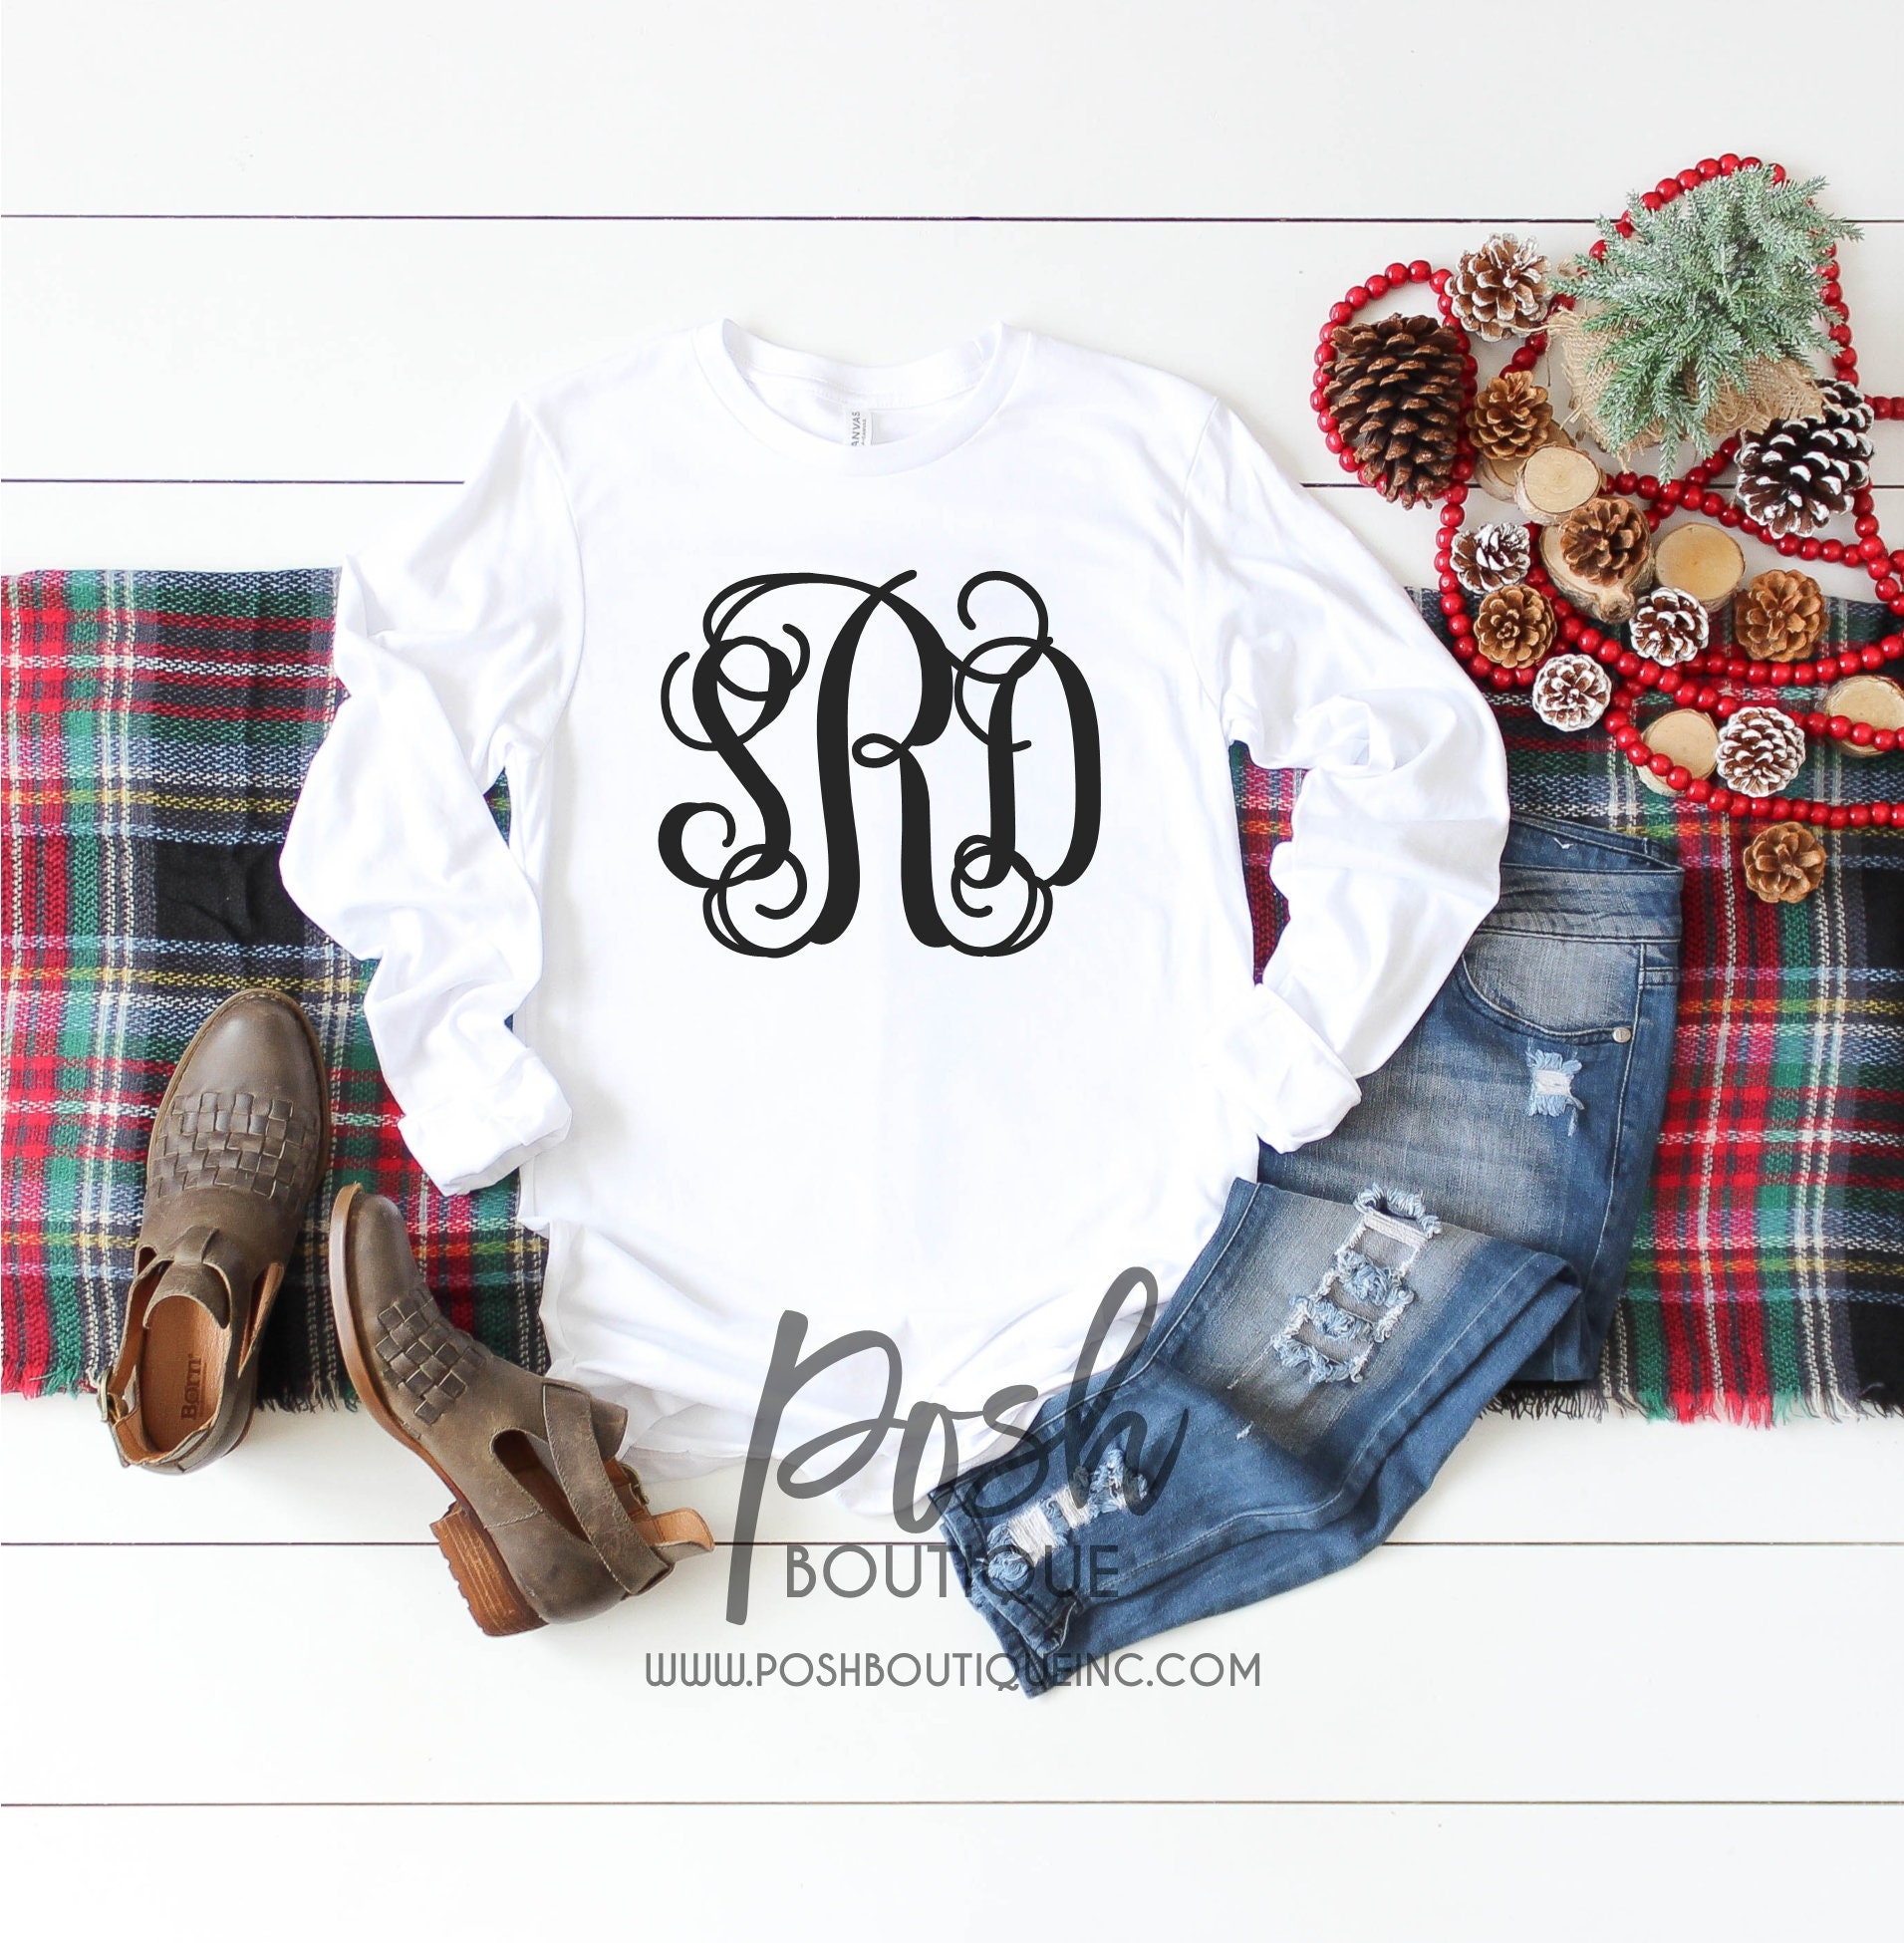 5631ce58bfb9 Long Sleeve Monogram Shirt, Monogram Tee Shirts for Girls and Women, Gift  for Her, Gift under 20. gallery photo ...